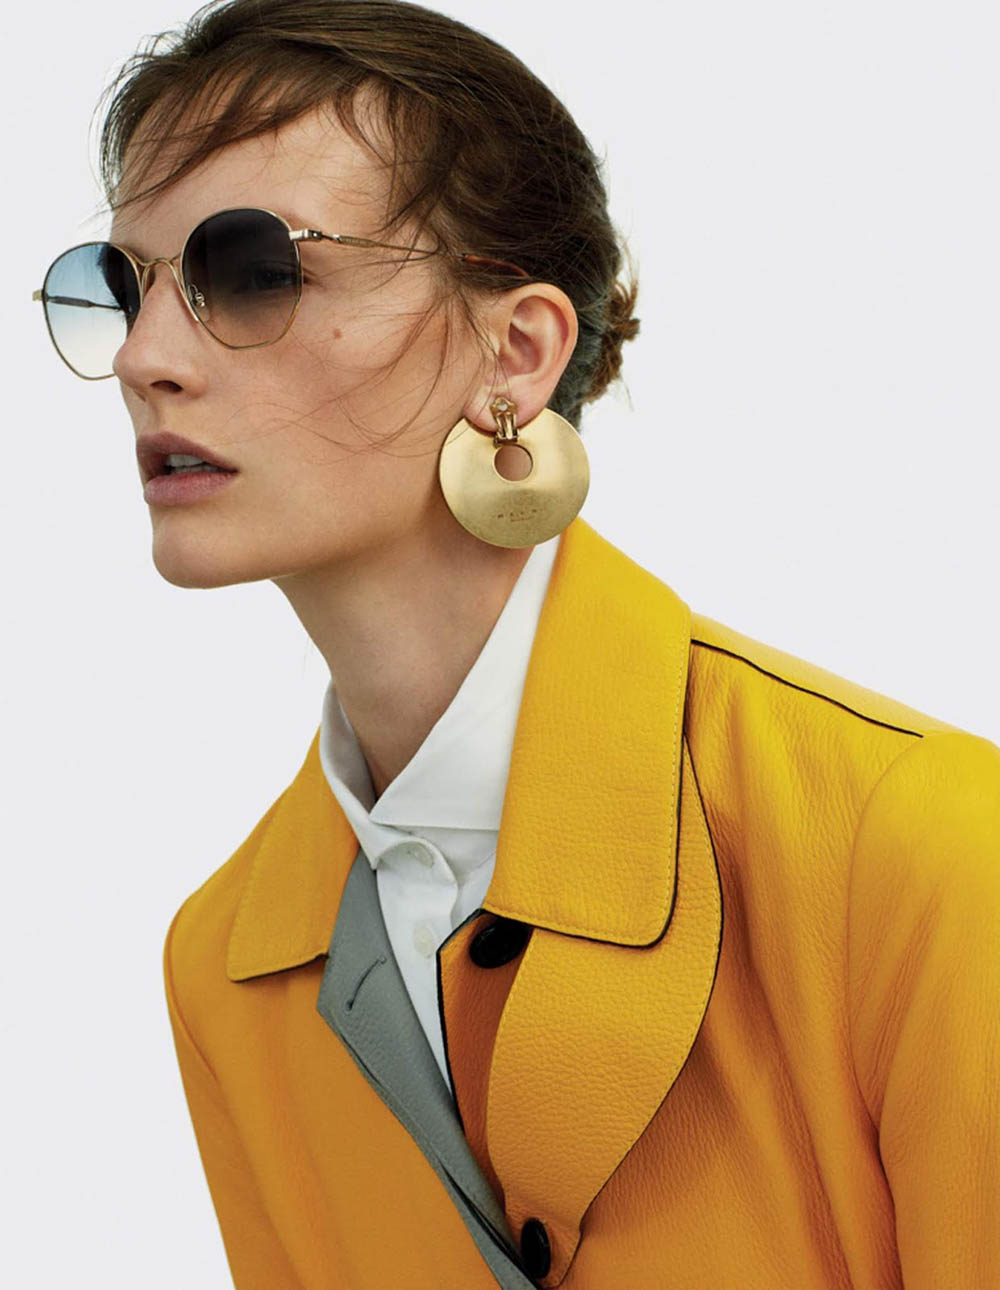 Sara Blomqvist by Hanna Tveite for WSJ. Magazine June 2018